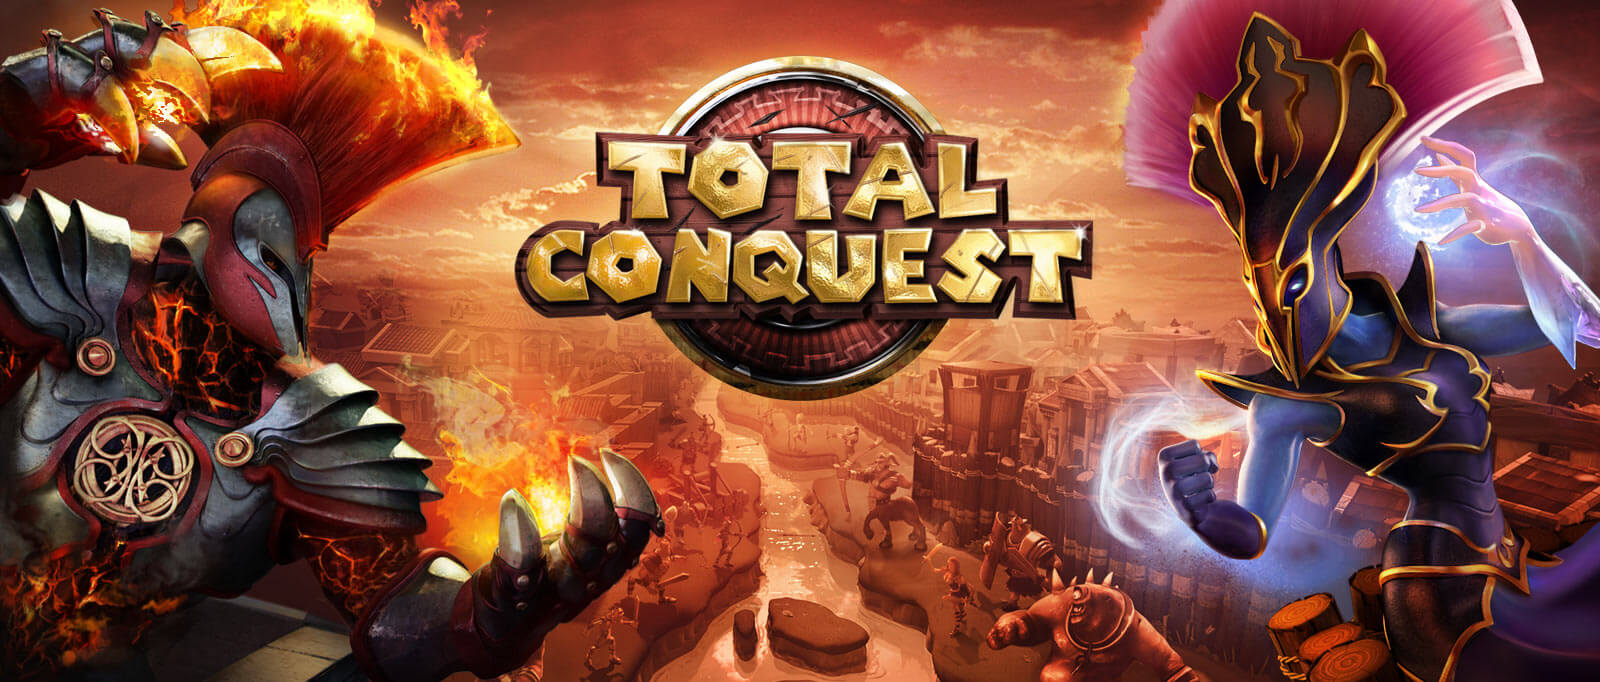 Total conquest - Games like Clash of Clans